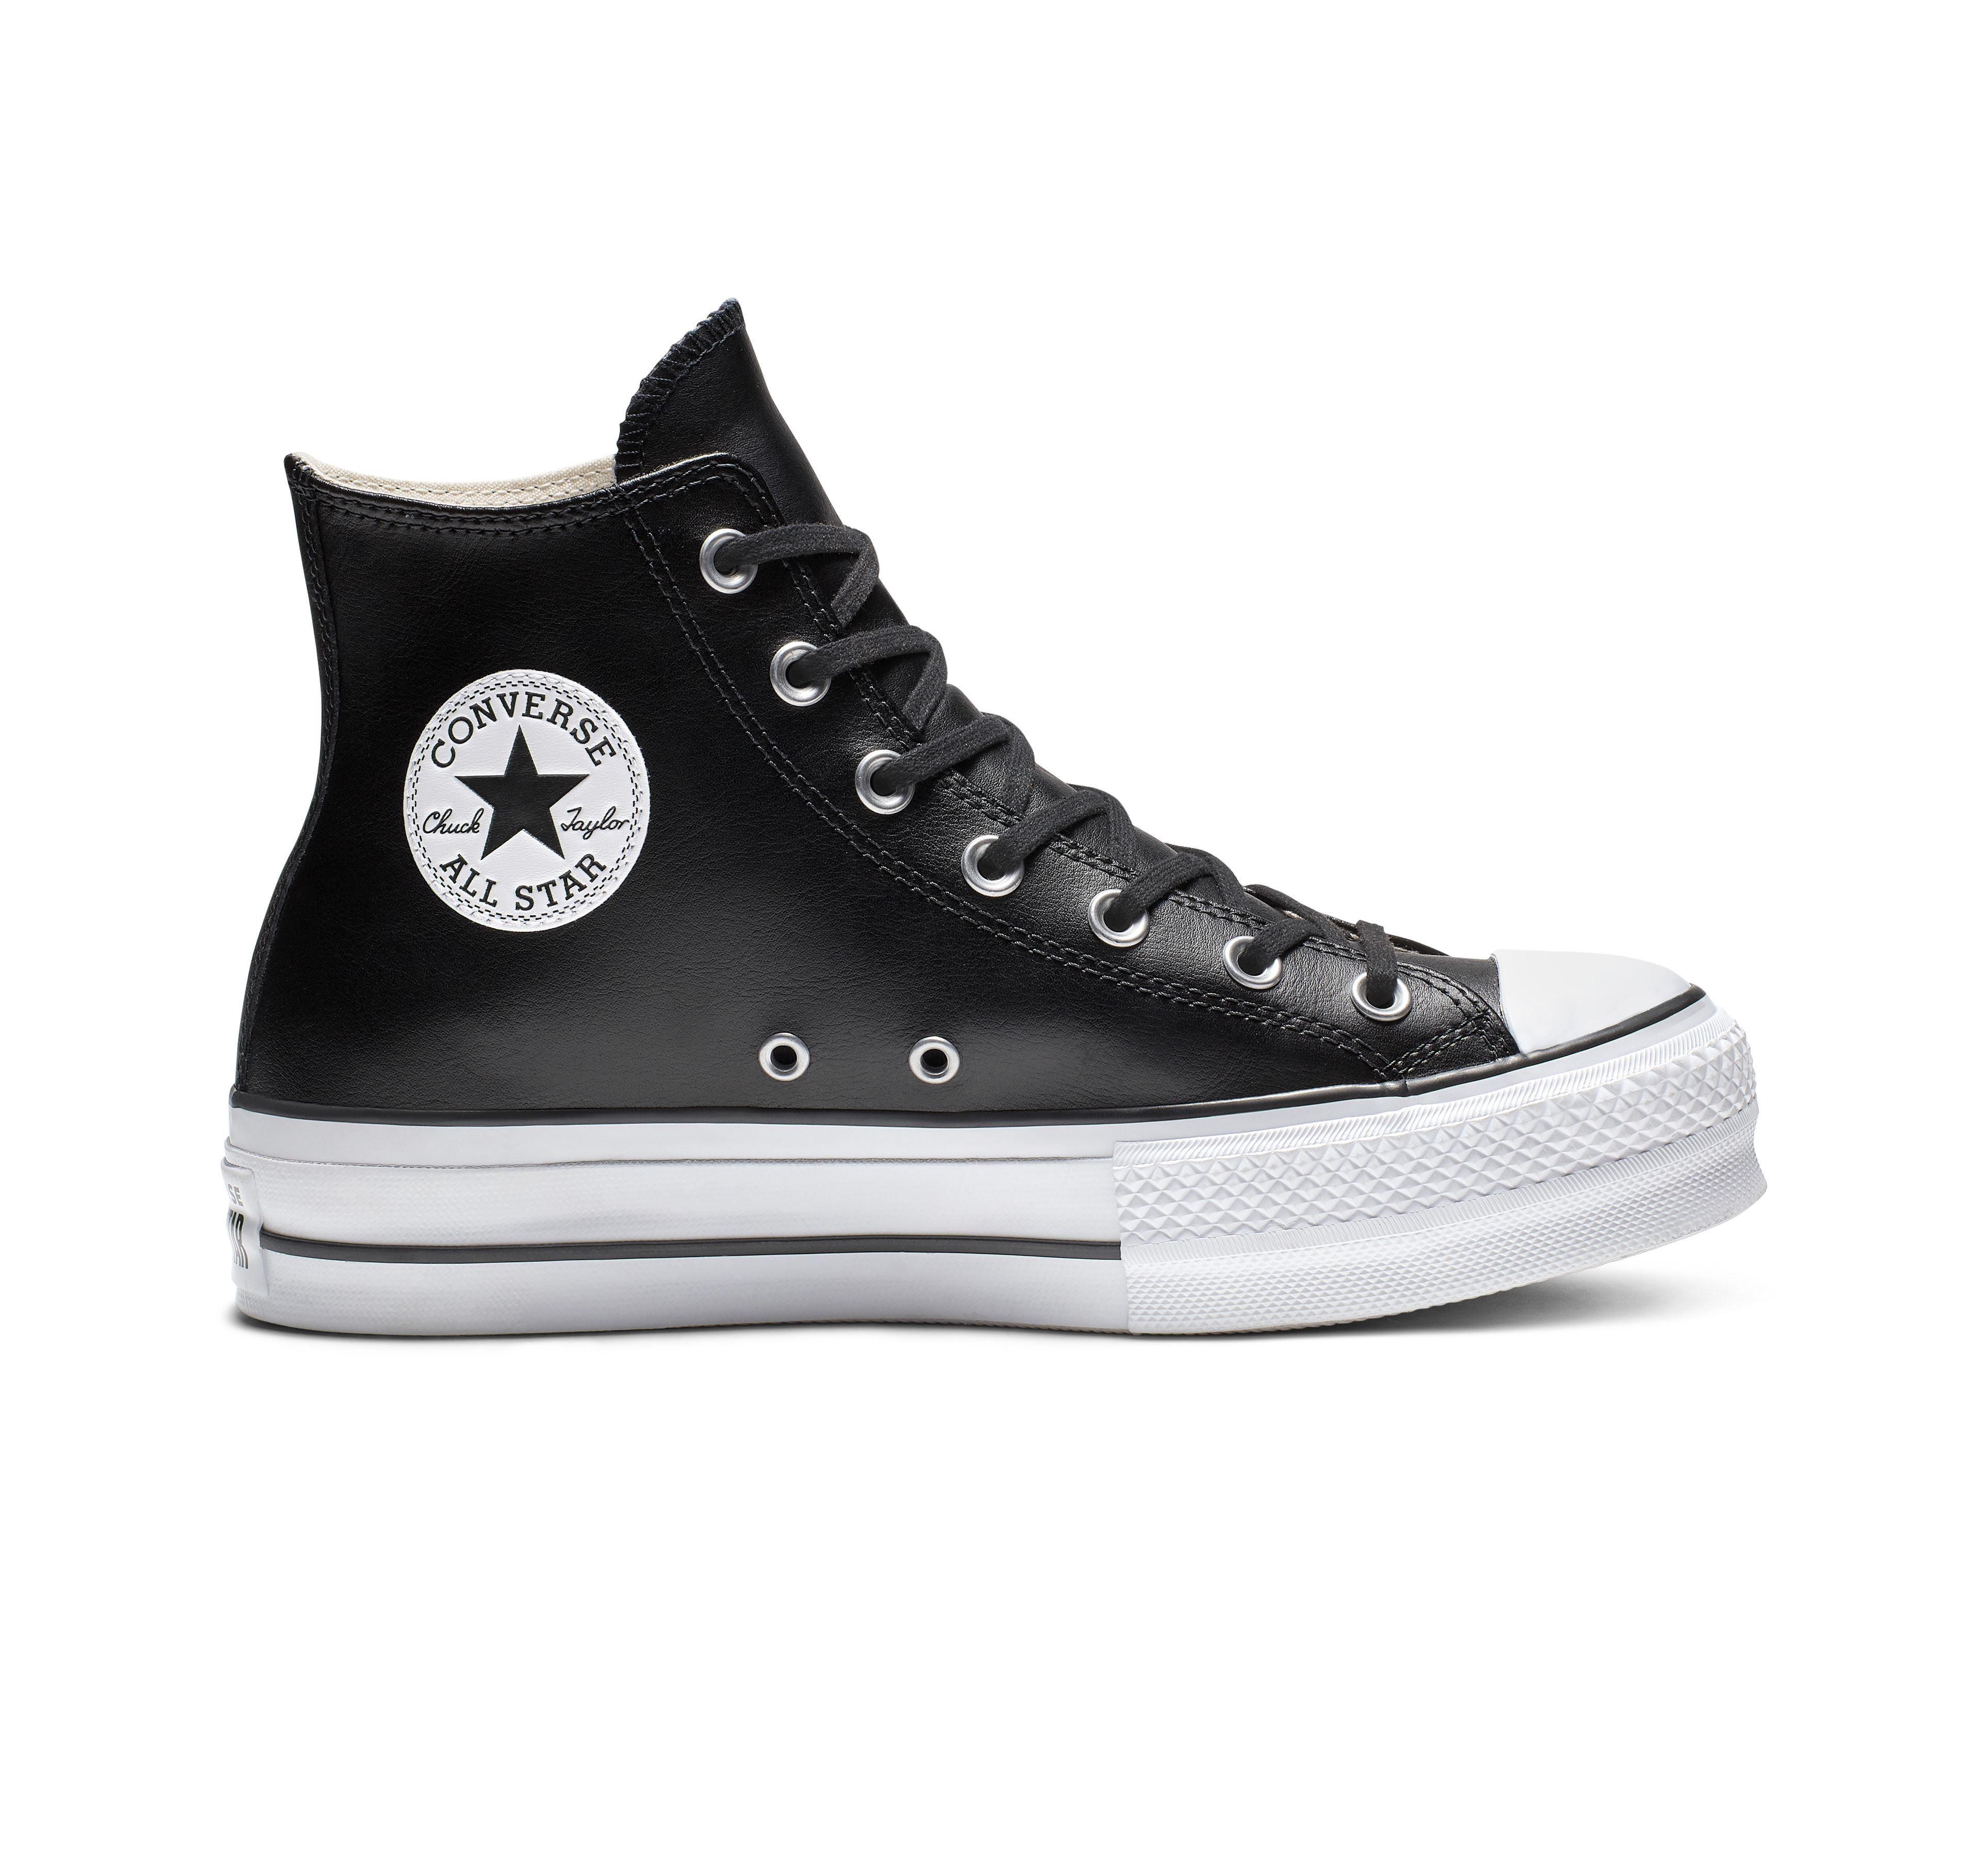 Chuck Taylor All Star Platform Clean Leather High Top Shoe Black Leather Converse Leather Converse Chuck Taylors